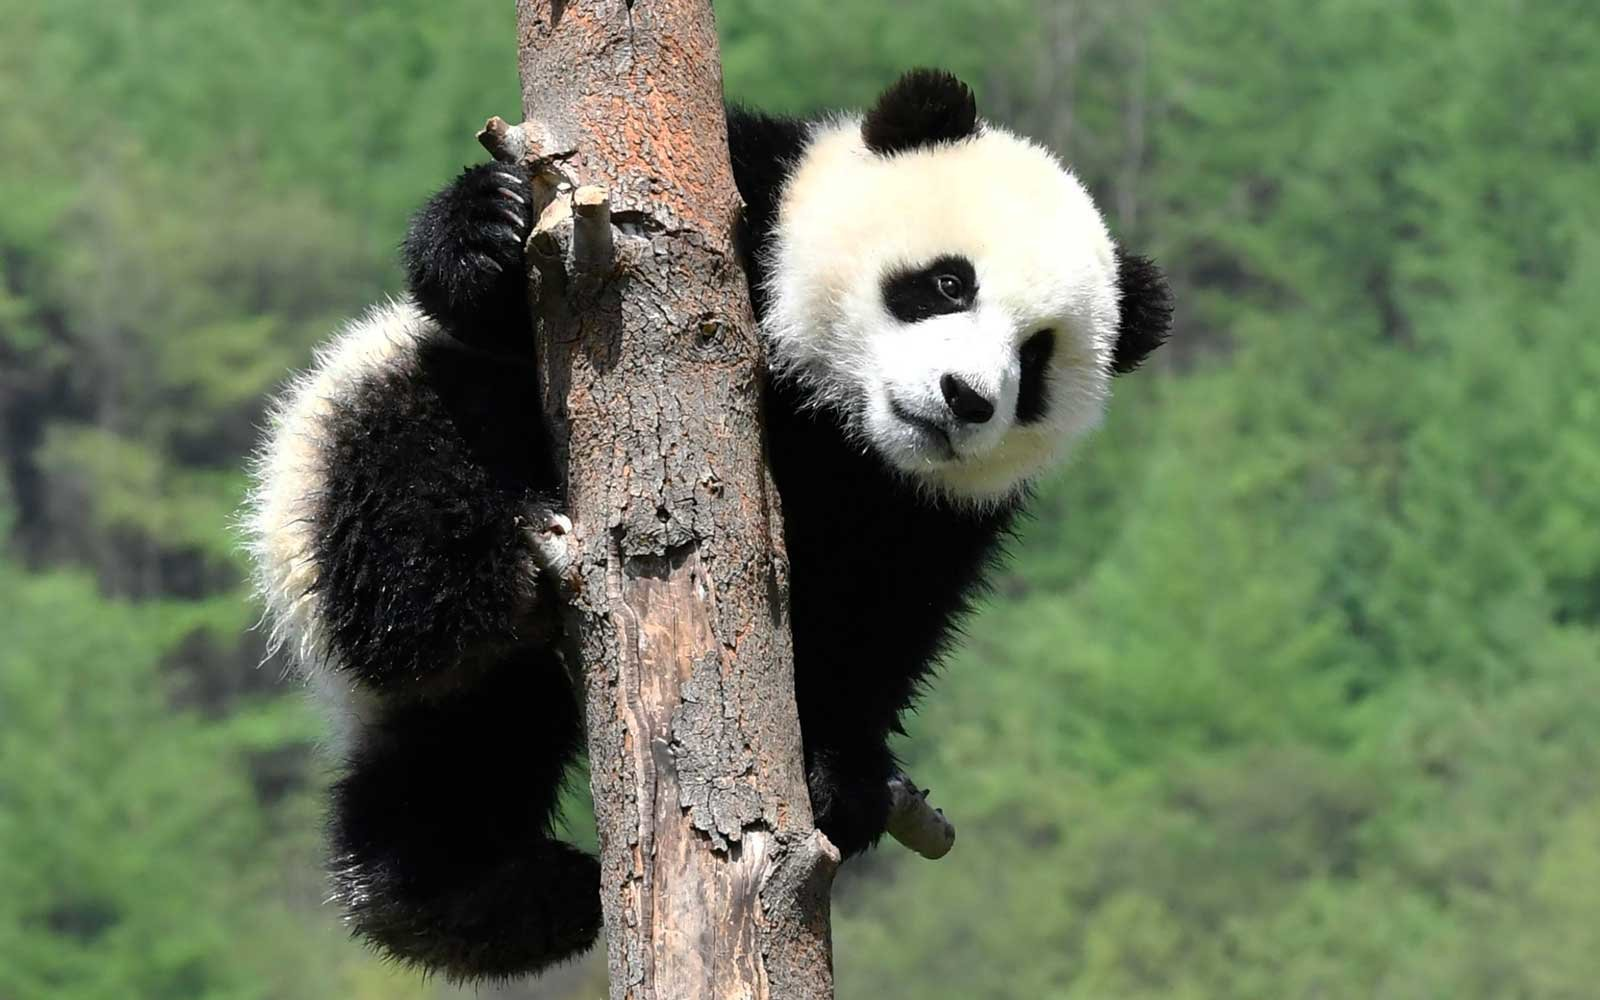 A giant panda cub holds a tree at Wolong Shenshuping Base of China Conservation and Research Center for Giant Pandas on April 23, 2019 in Aba Tibetan and Qiang Autonomous Prefecture, Sichuan Province of China